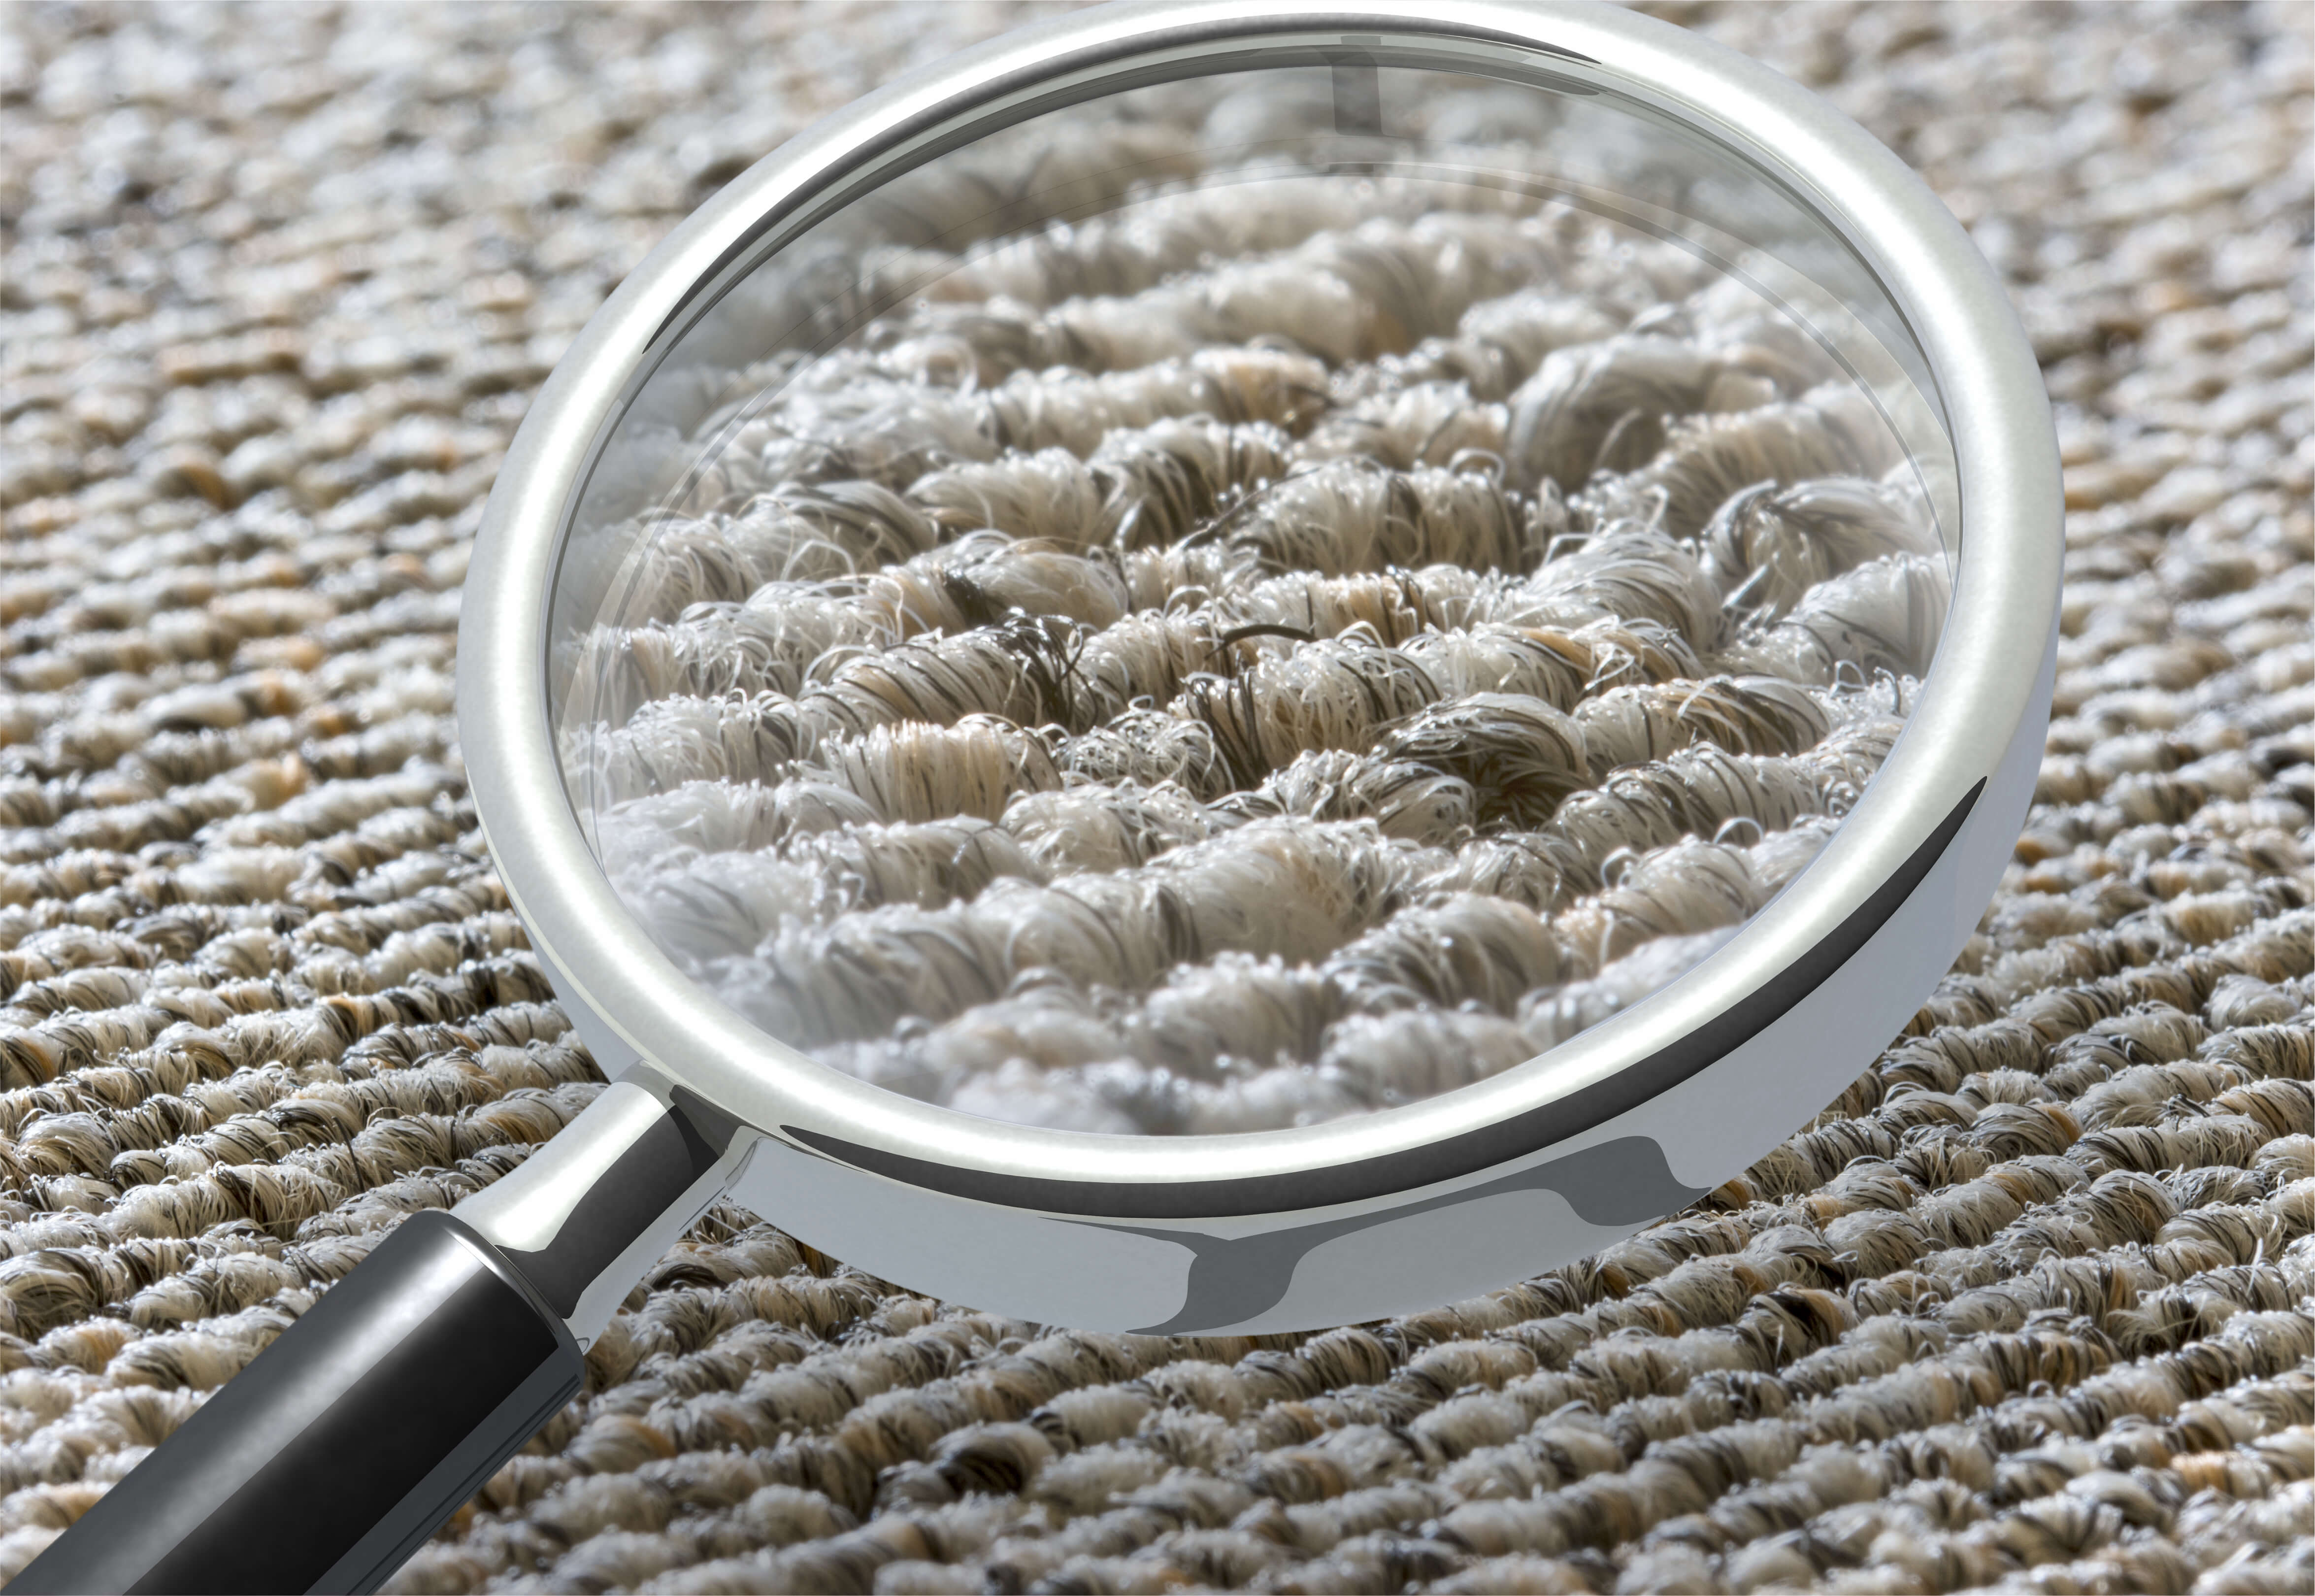 Inspecting carpet with magnifying glass